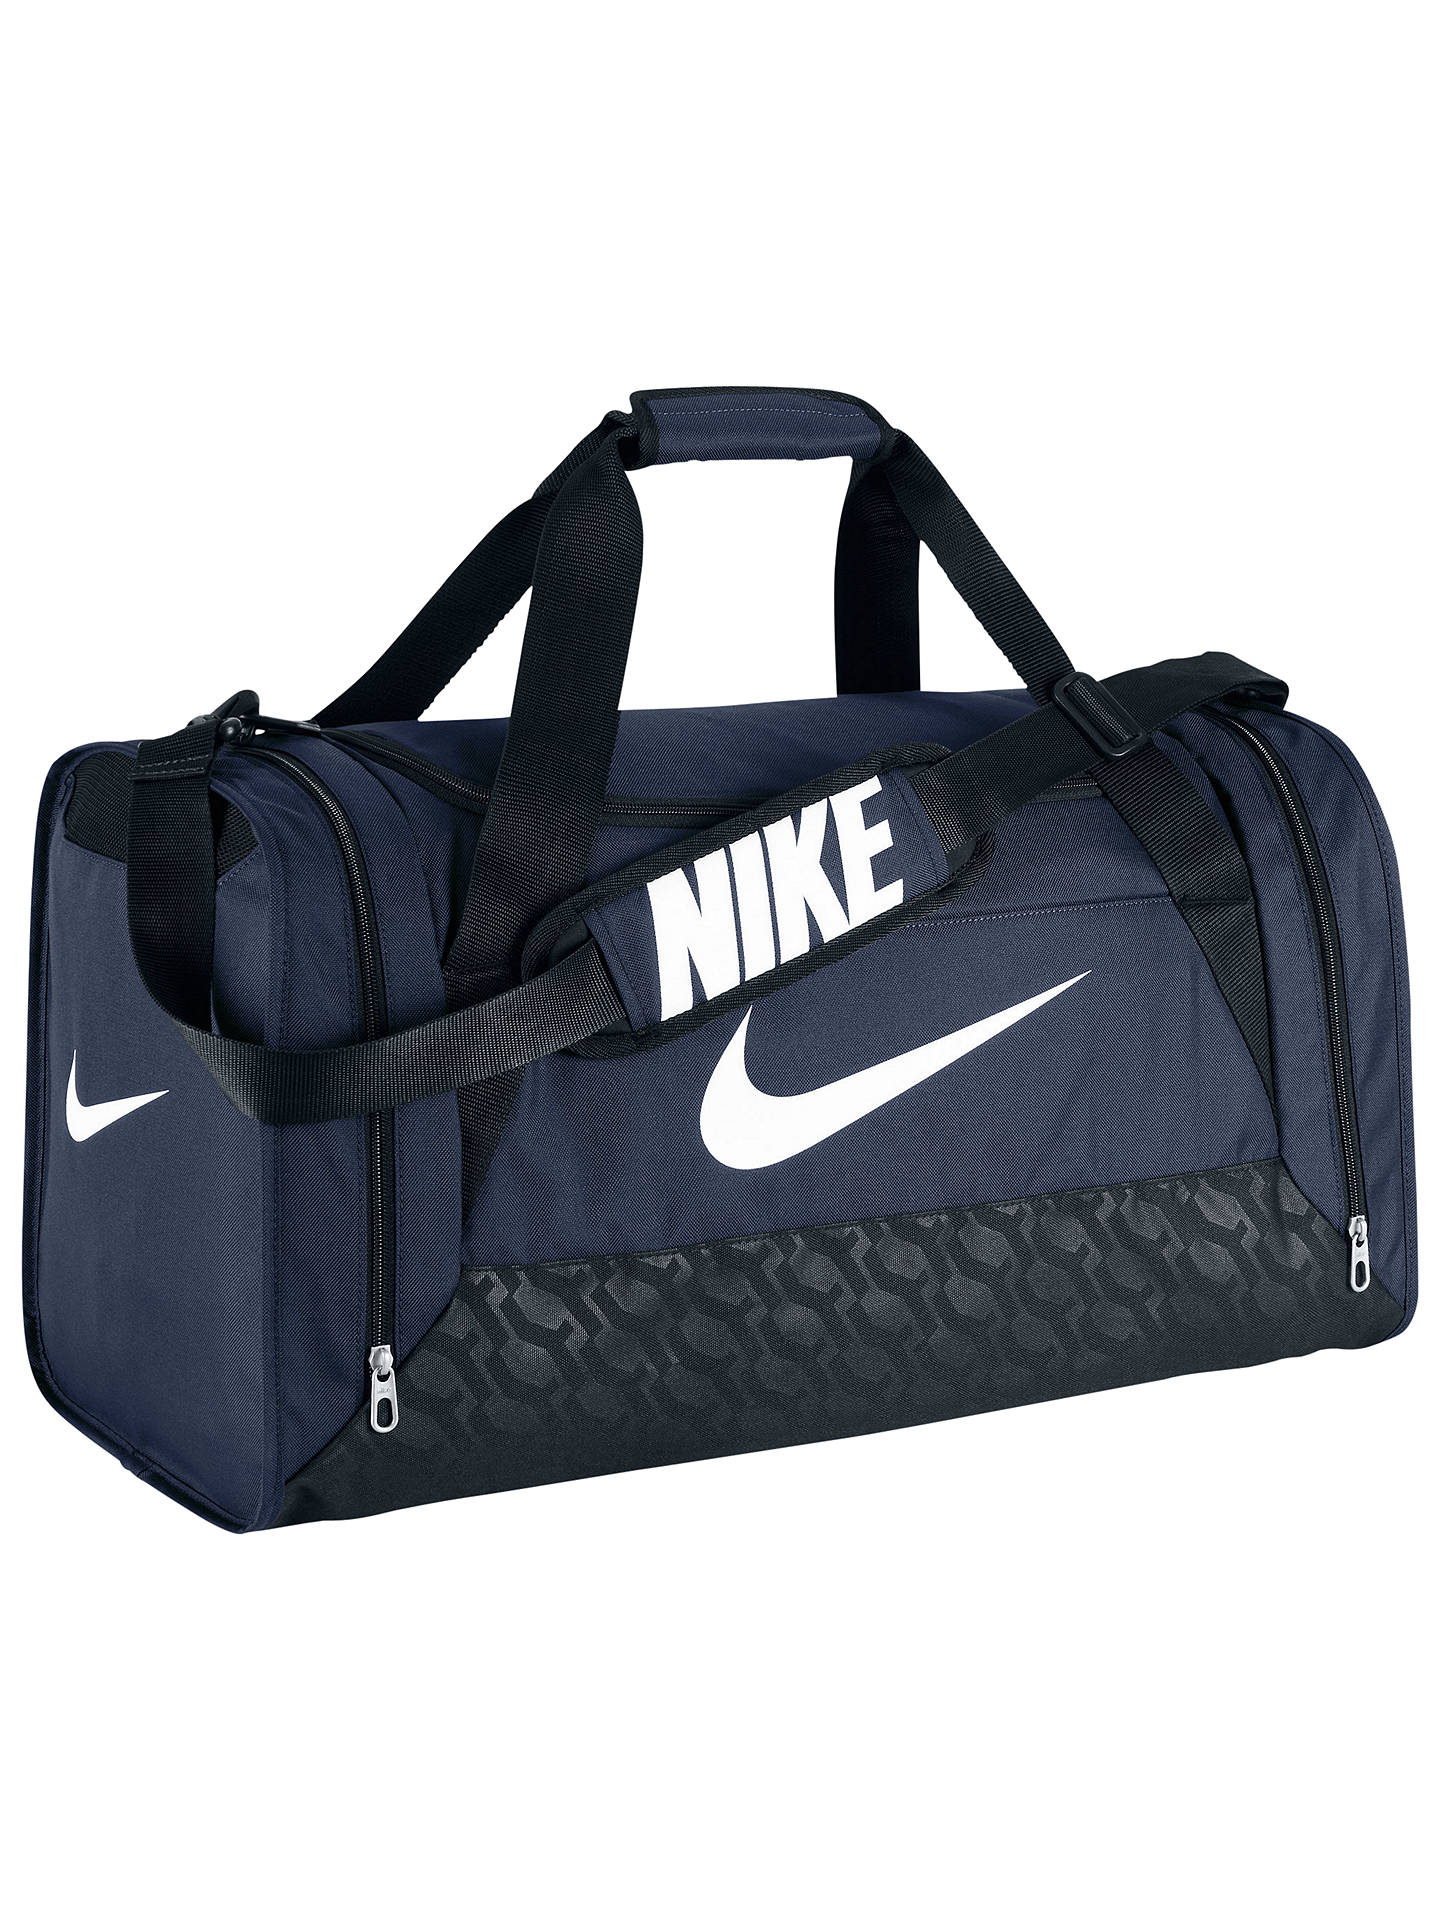 Buy Nike Brasilia 6 Medium Duffle Bag 249f7c58b3030